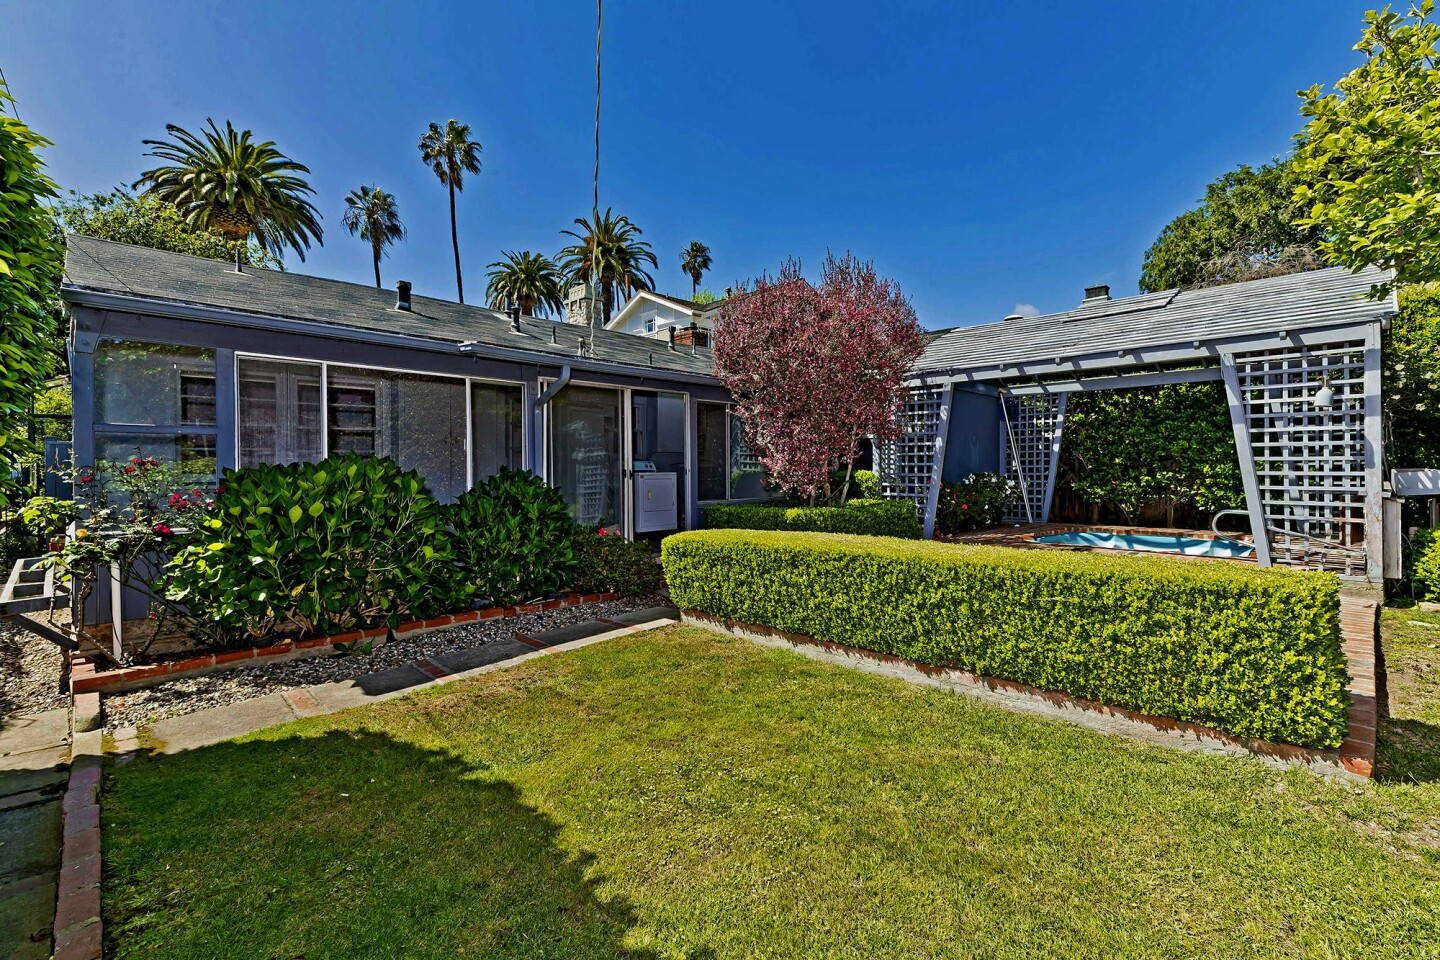 Tyra Banks paid a little over $3 million for this Pacific Palisades home, which she plans to transform into a farmhouse-inspired beach cottage.